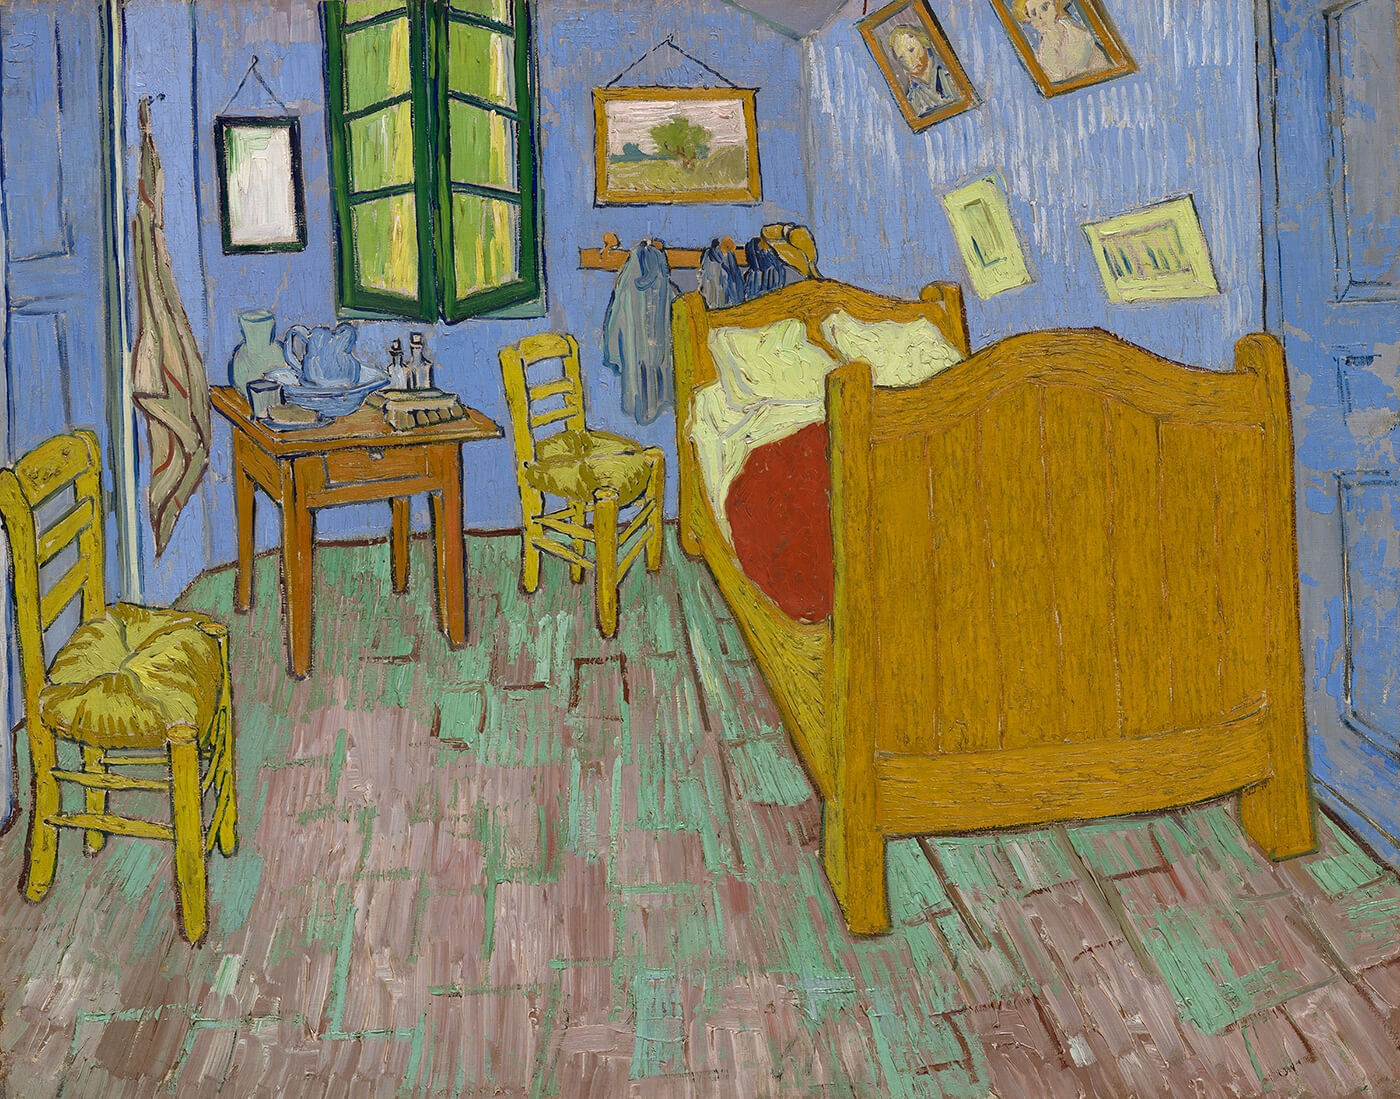 Vangogh Bedroom 1889 Artinstitutechicago 1400